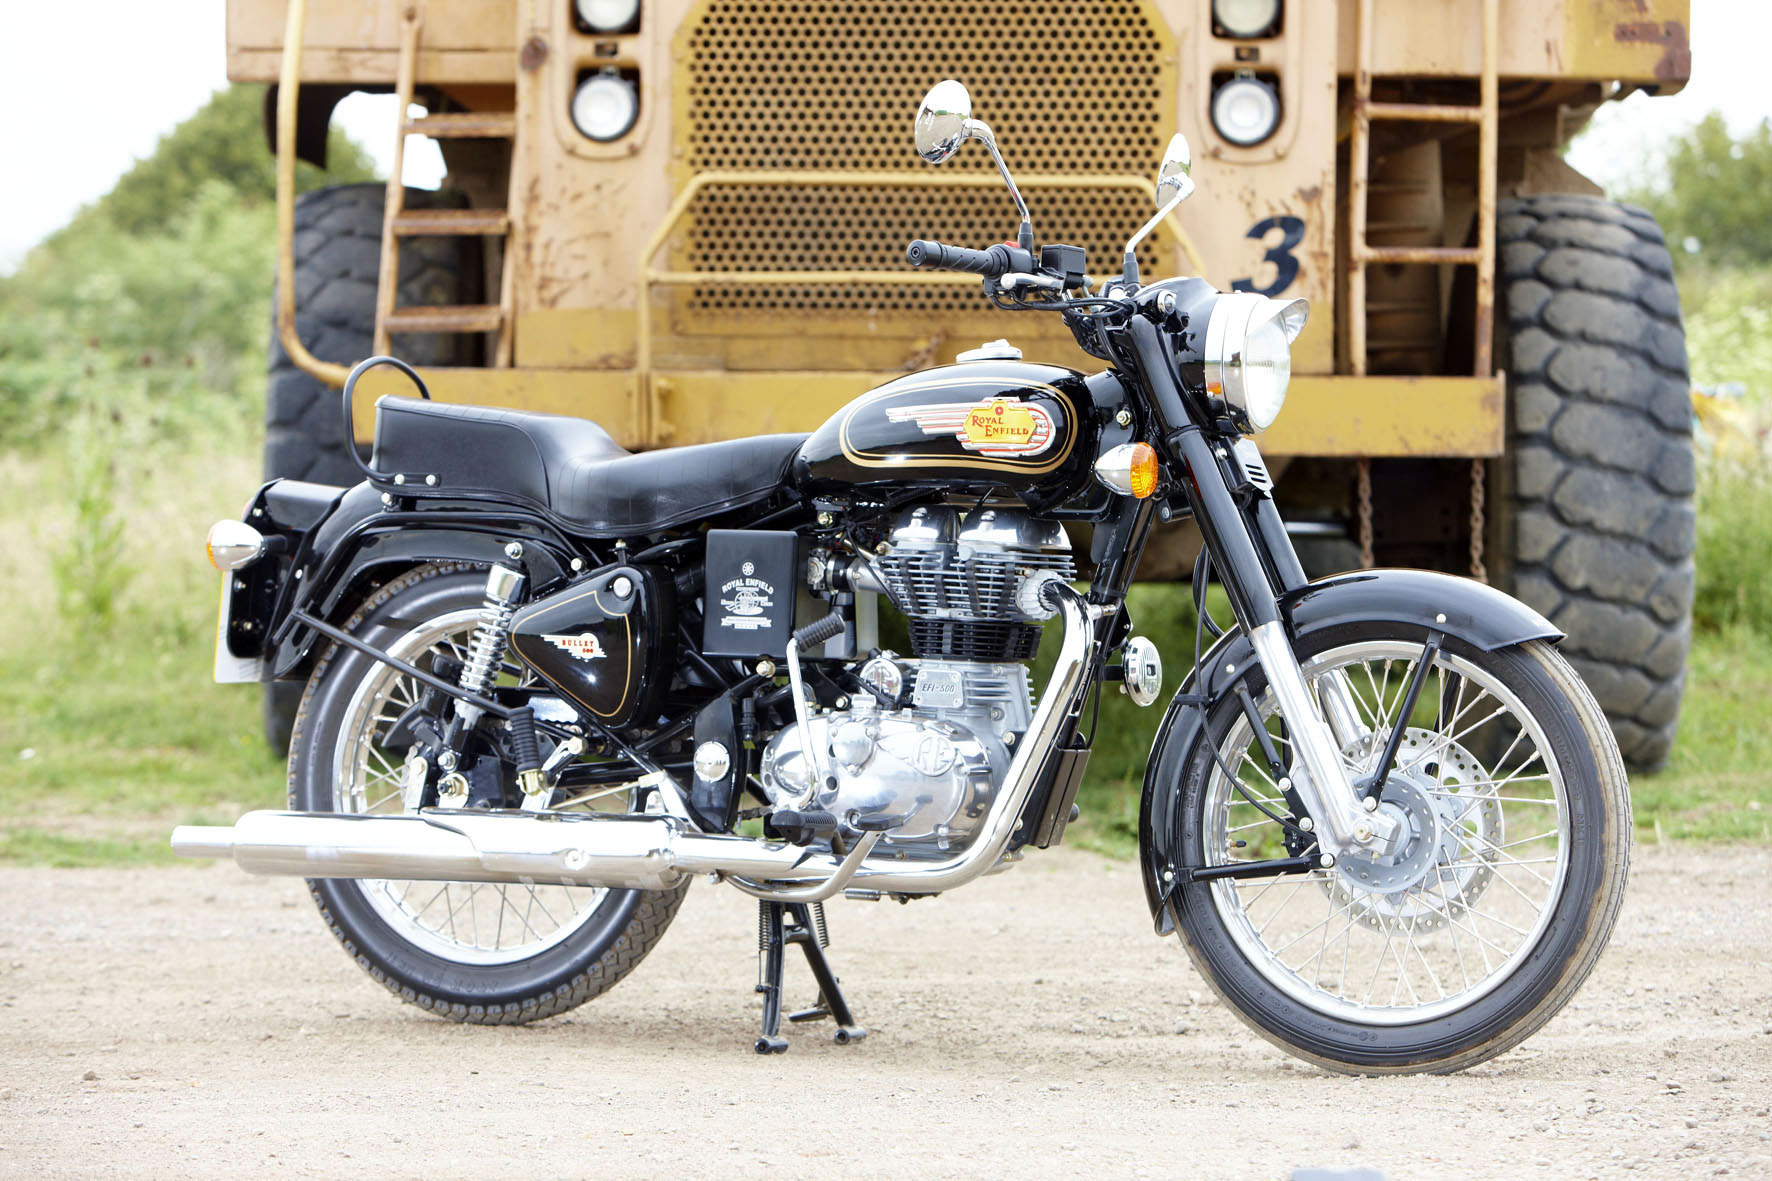 Royal Enfield Bullet 500 ES Deluxe 2005 images #123405